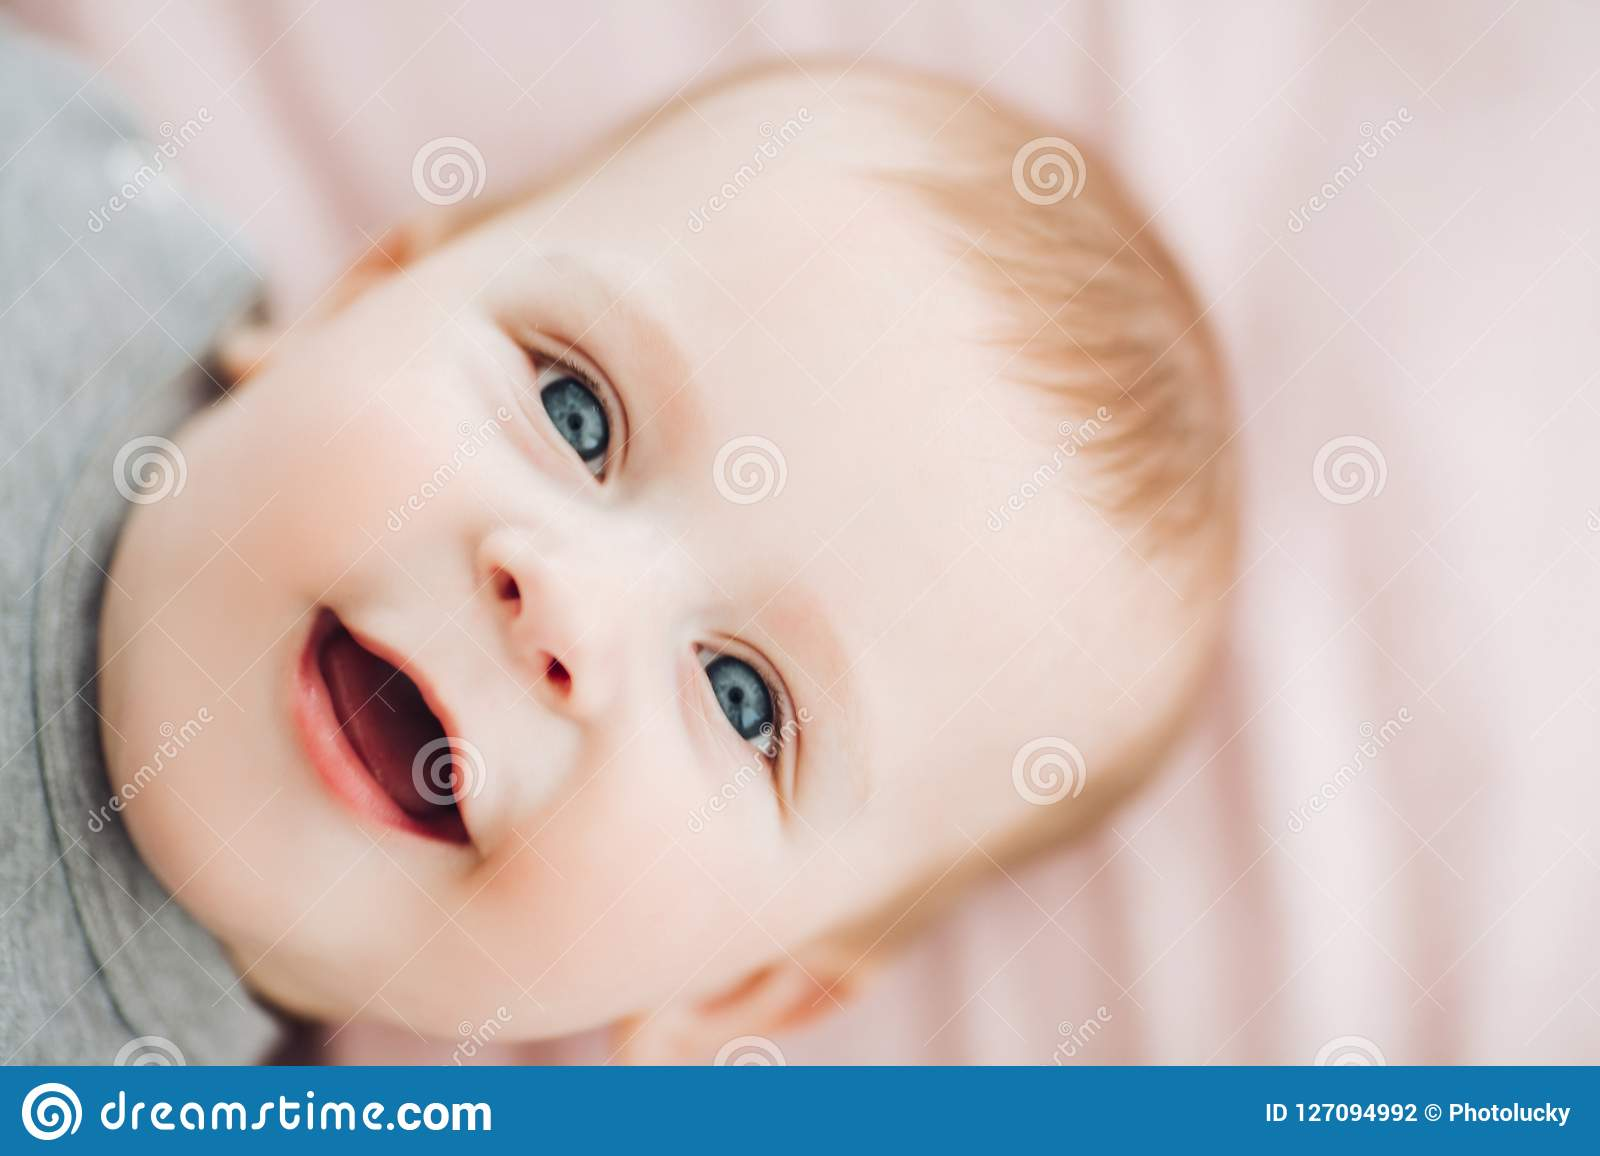 19be5ef15 Cute Baby Boy With Big Blue Eyes. Stock Photo - Image of face ...